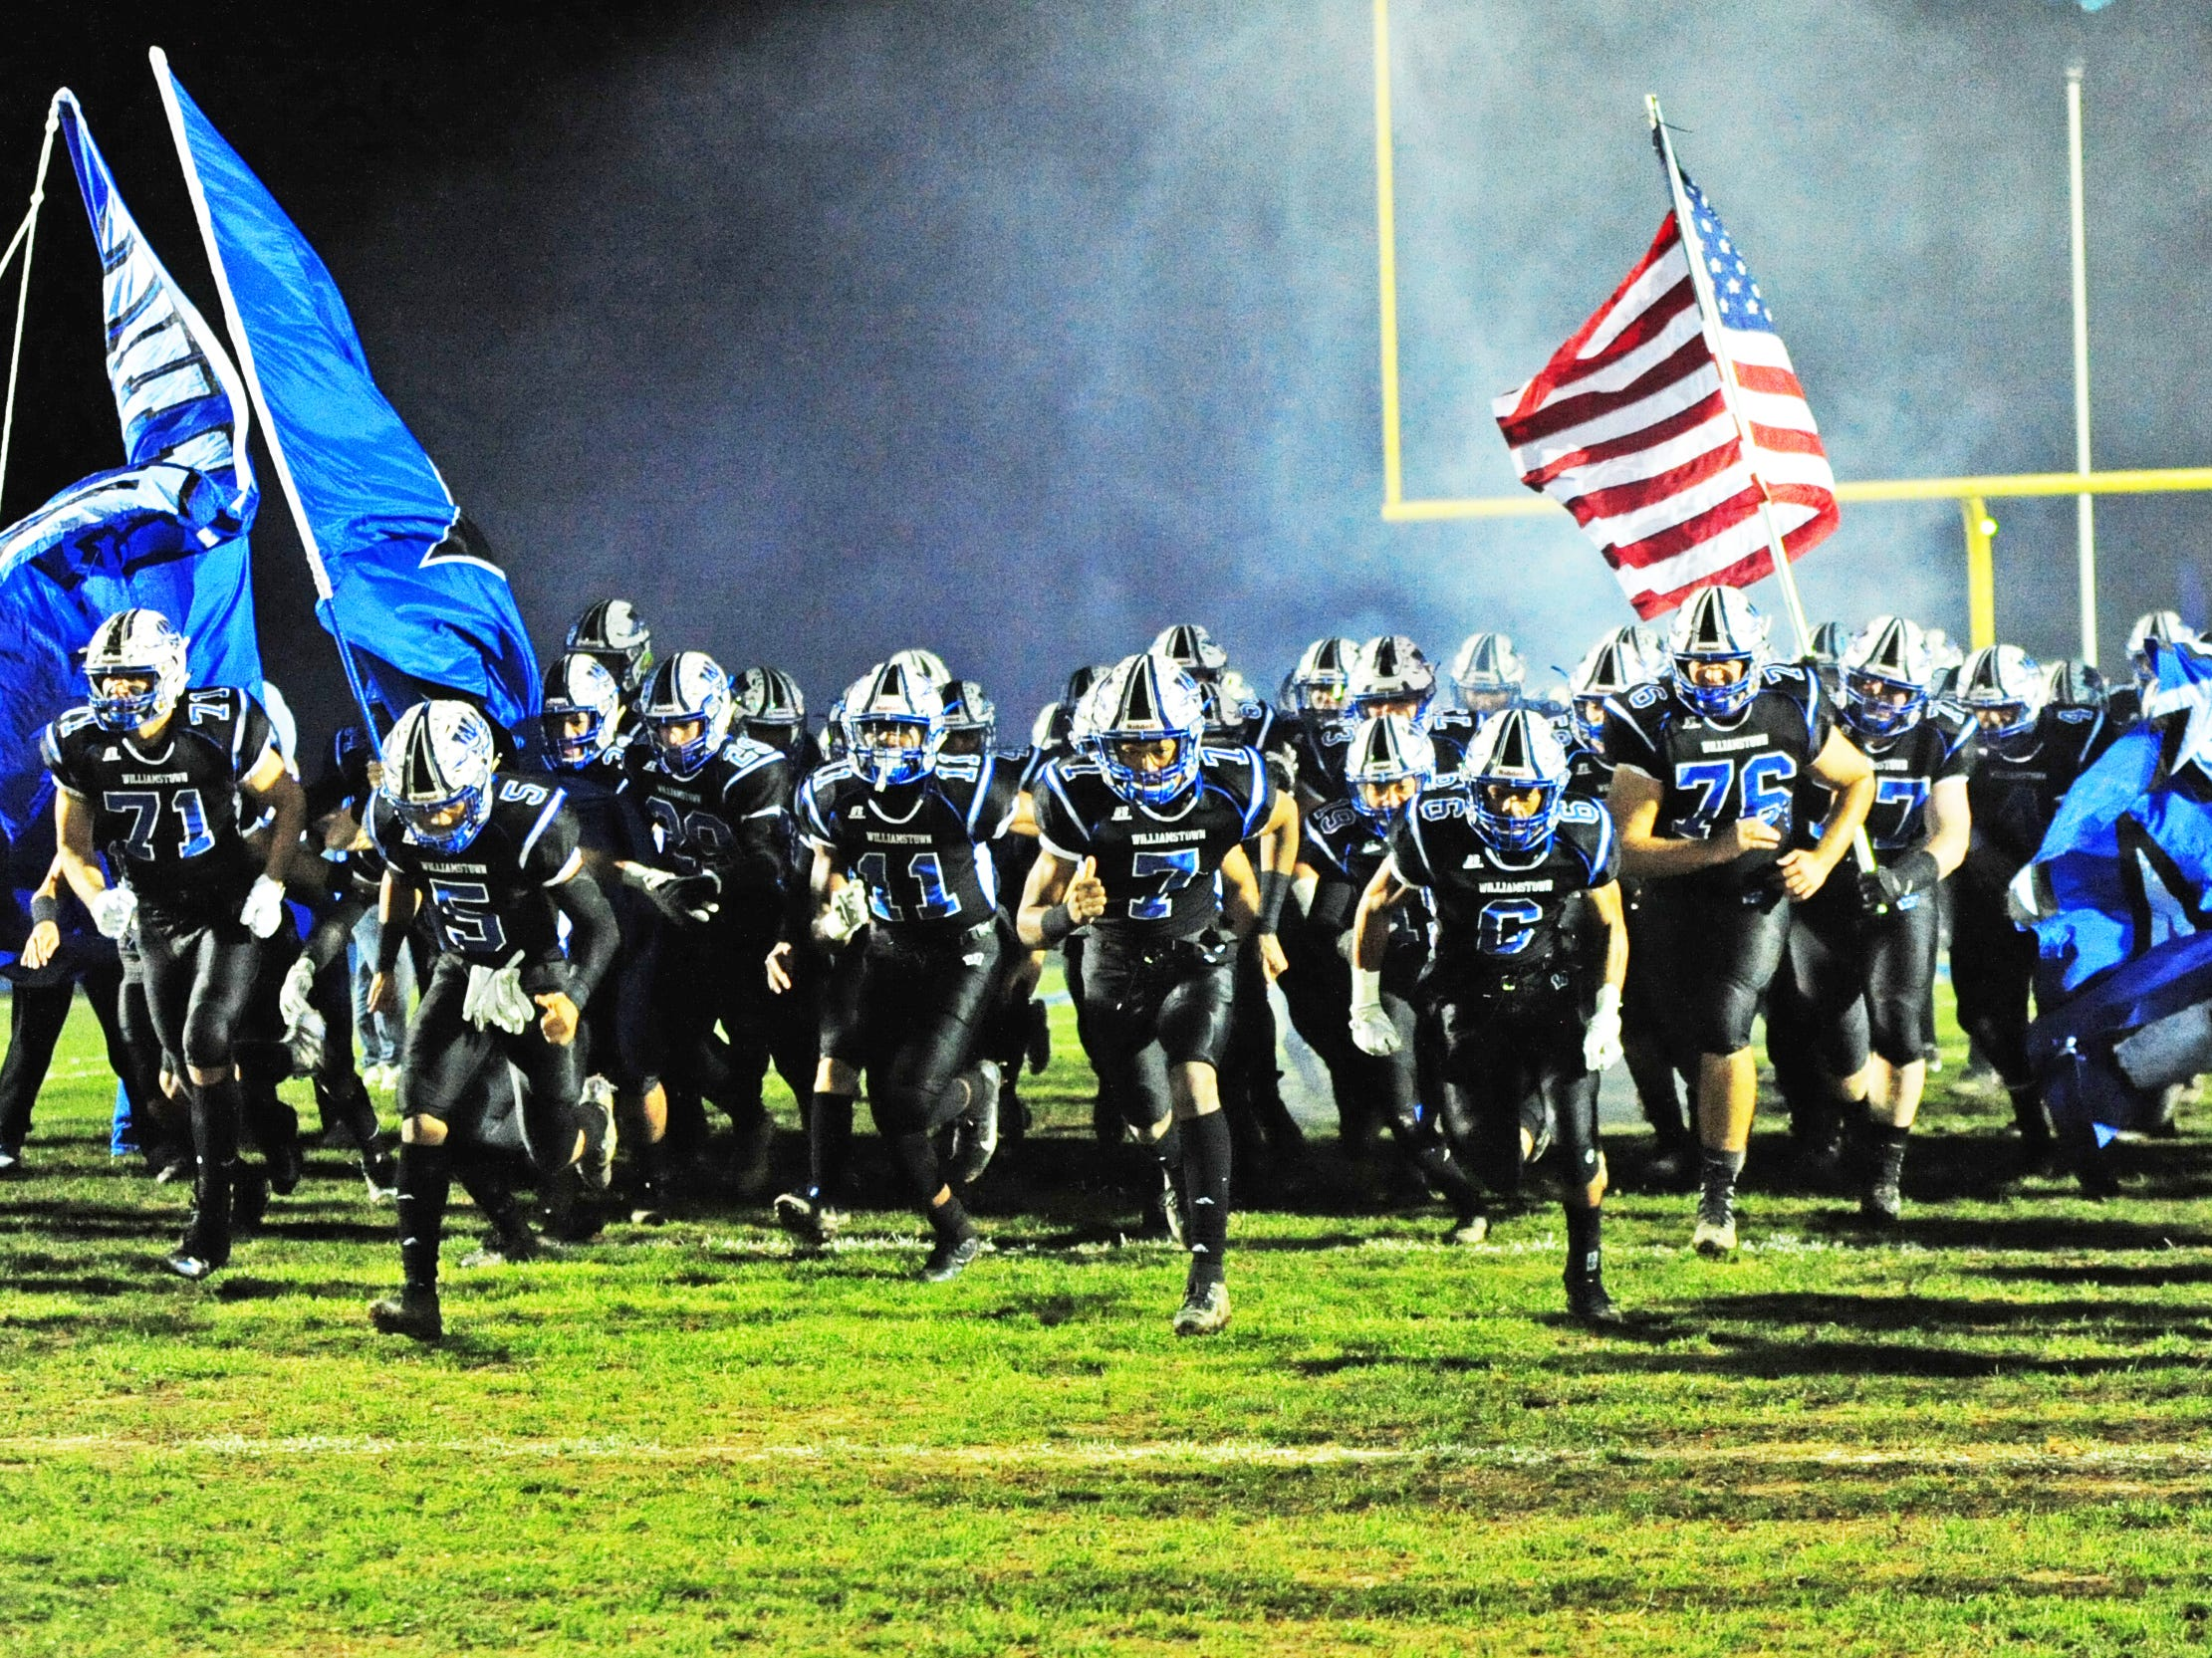 H.S. football: No smoke screen here, Williamstown is clear-cut champ